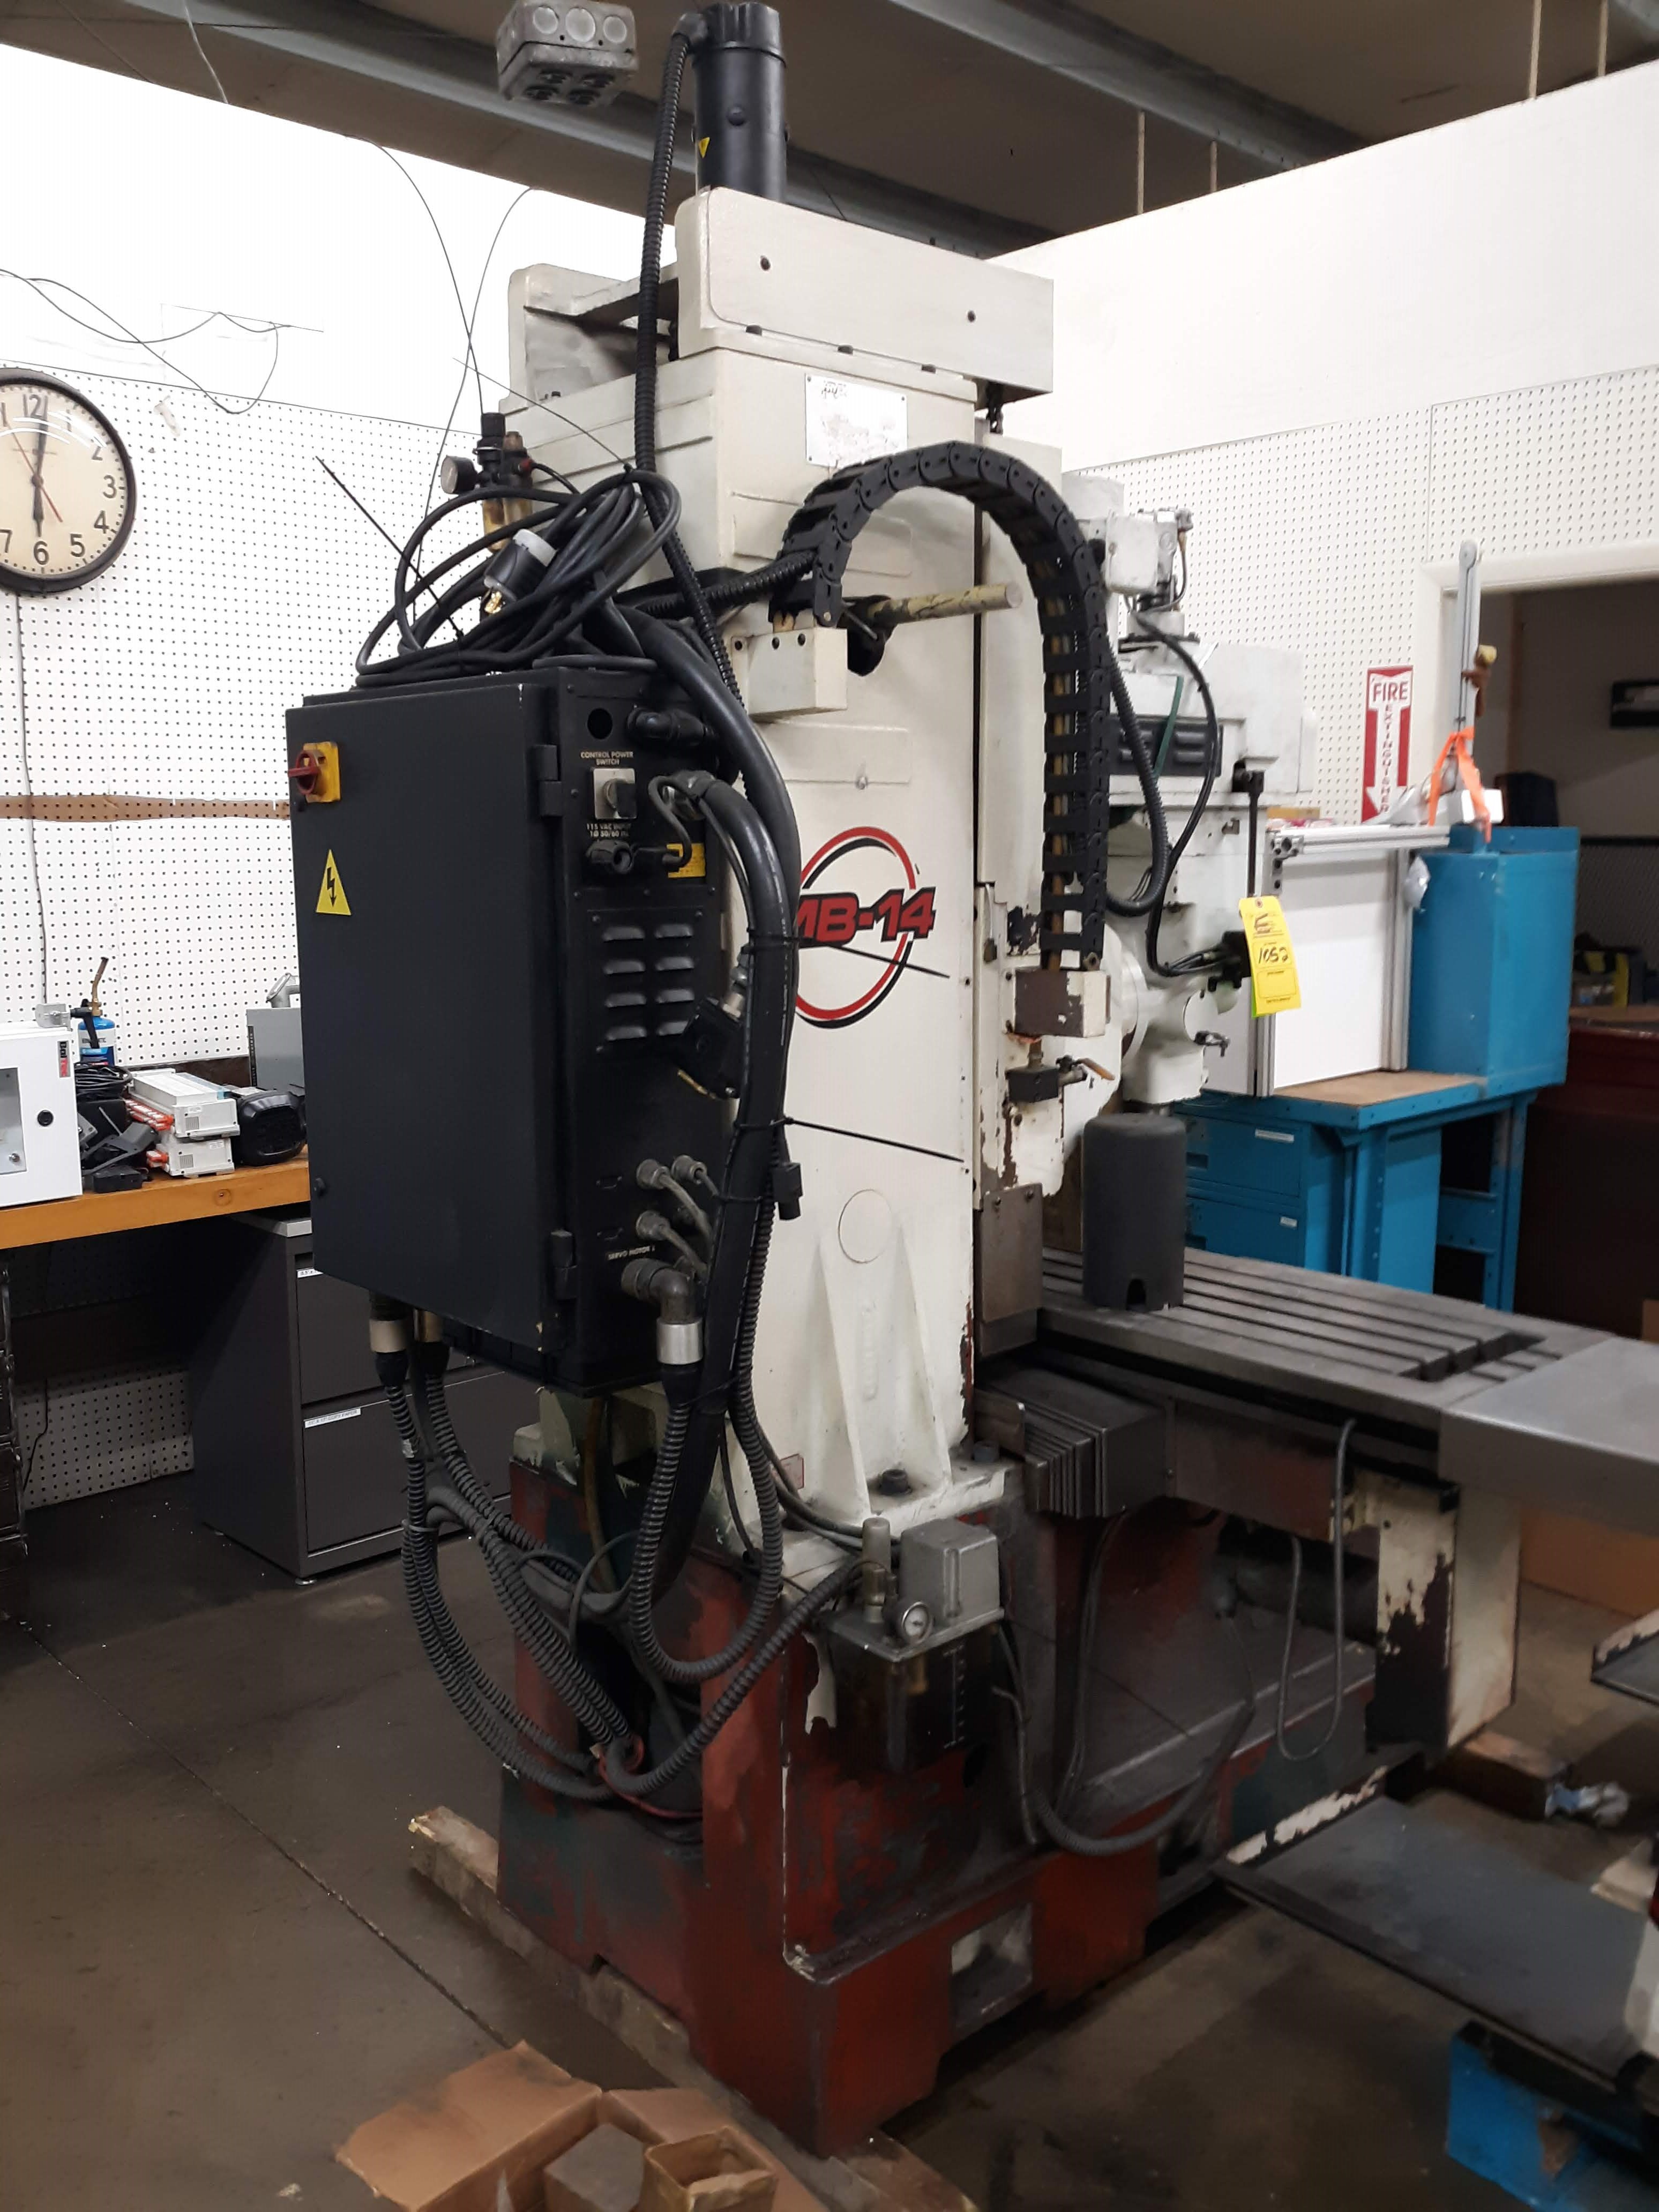 FRYER CNC MILLING MACHINE MODEL-MB-14 S#14247 54 X 16 TABLE ANILAM 3300 MK DRO (LOCATED AT: 432 - Image 6 of 8